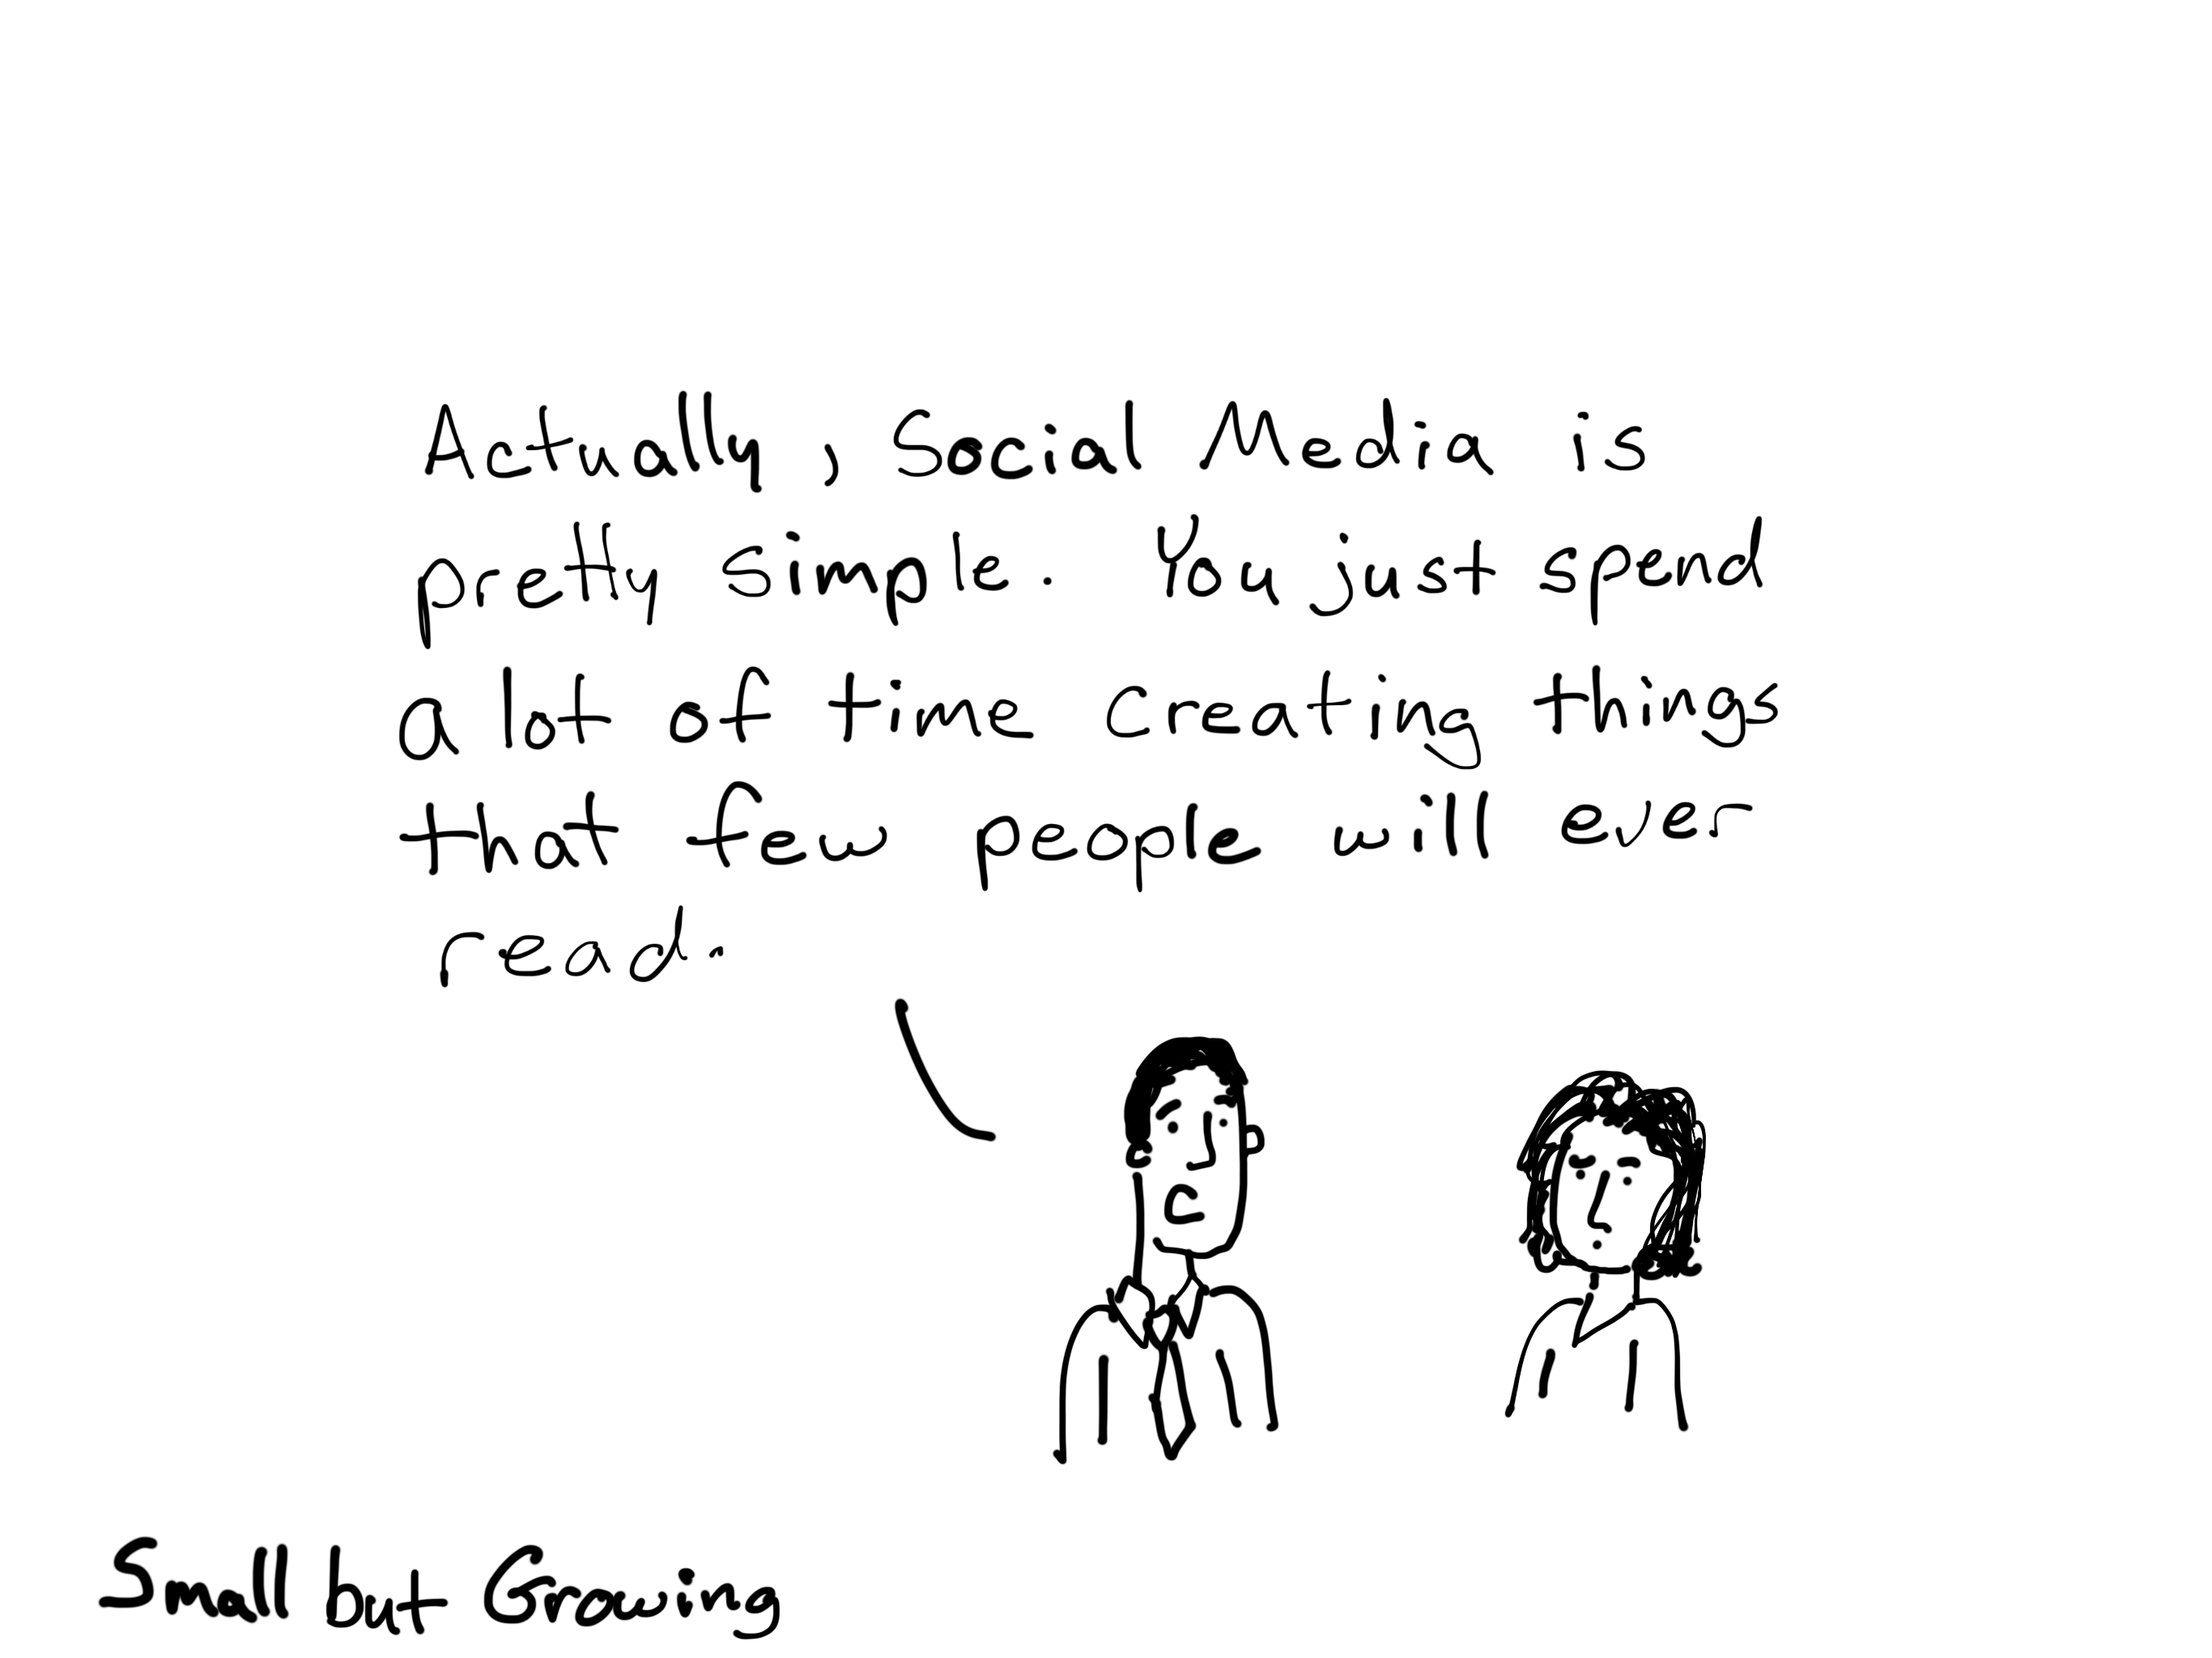 Actually, social media is pretty simple. You just spend a lot of time creating things that few people will ever read. Freshspectrum cartoon.